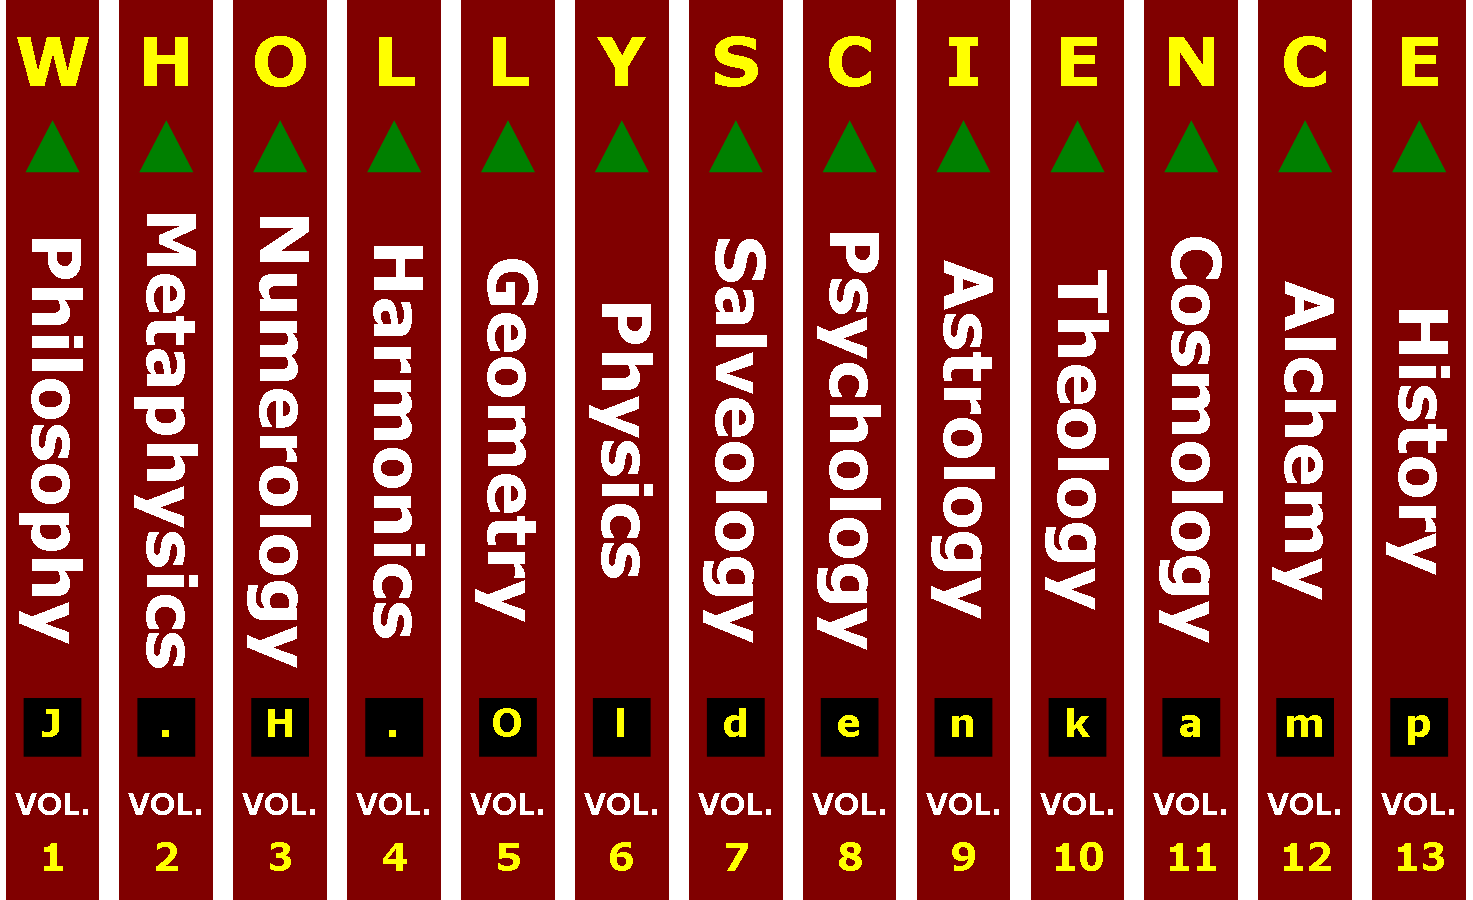 13 Pillars of Wholly Science